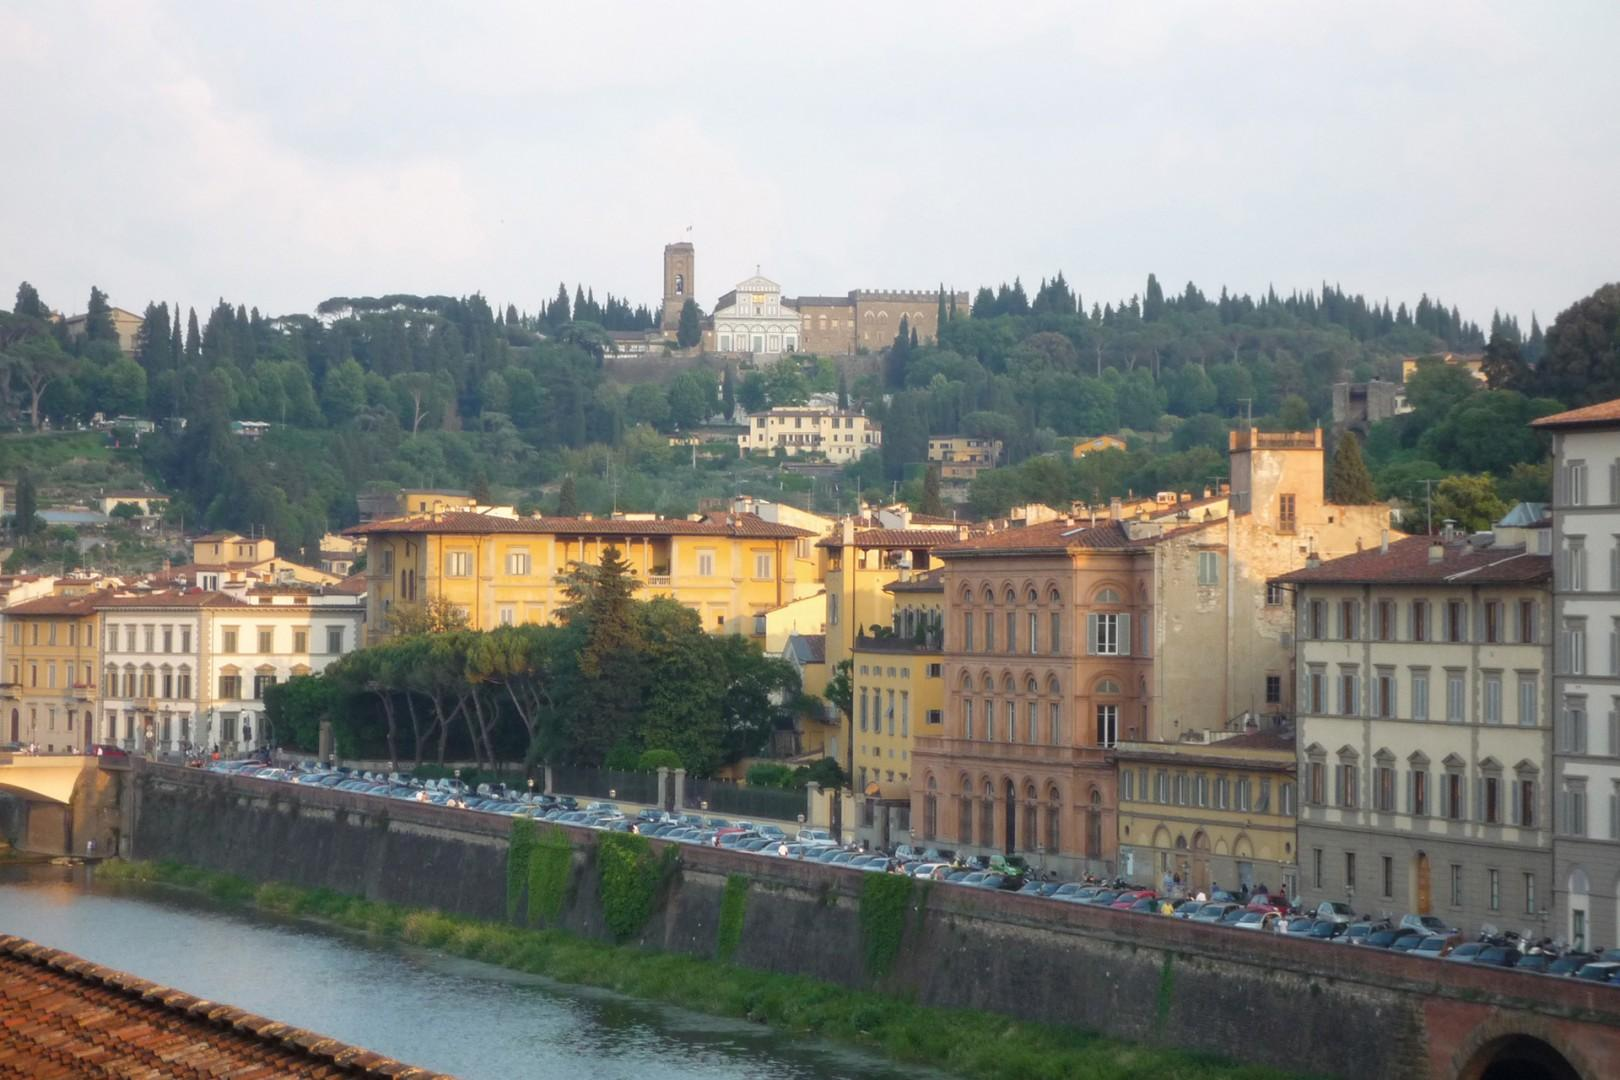 Watching the sunrise on San Miniato al Monte is a timeless memory.